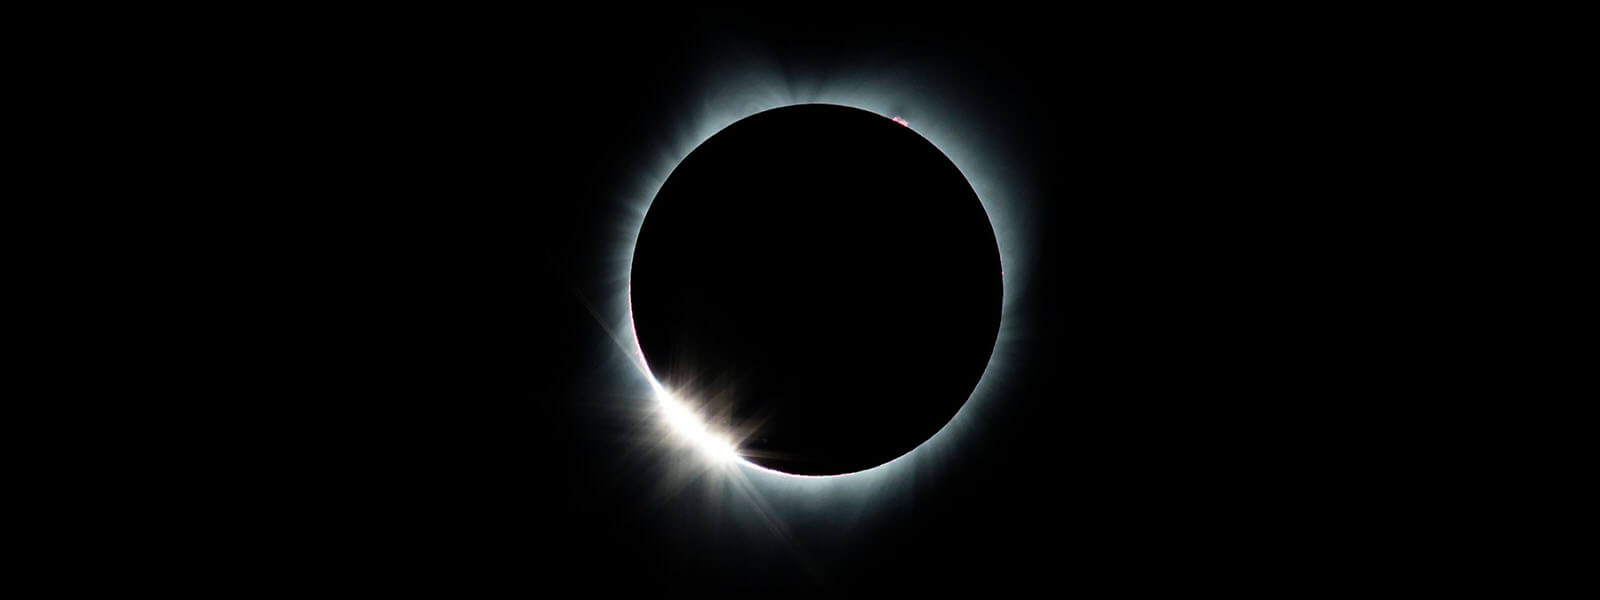 We will see a total solar eclipse on our total solar eclipse snorkeling tour to West Papua in 2023